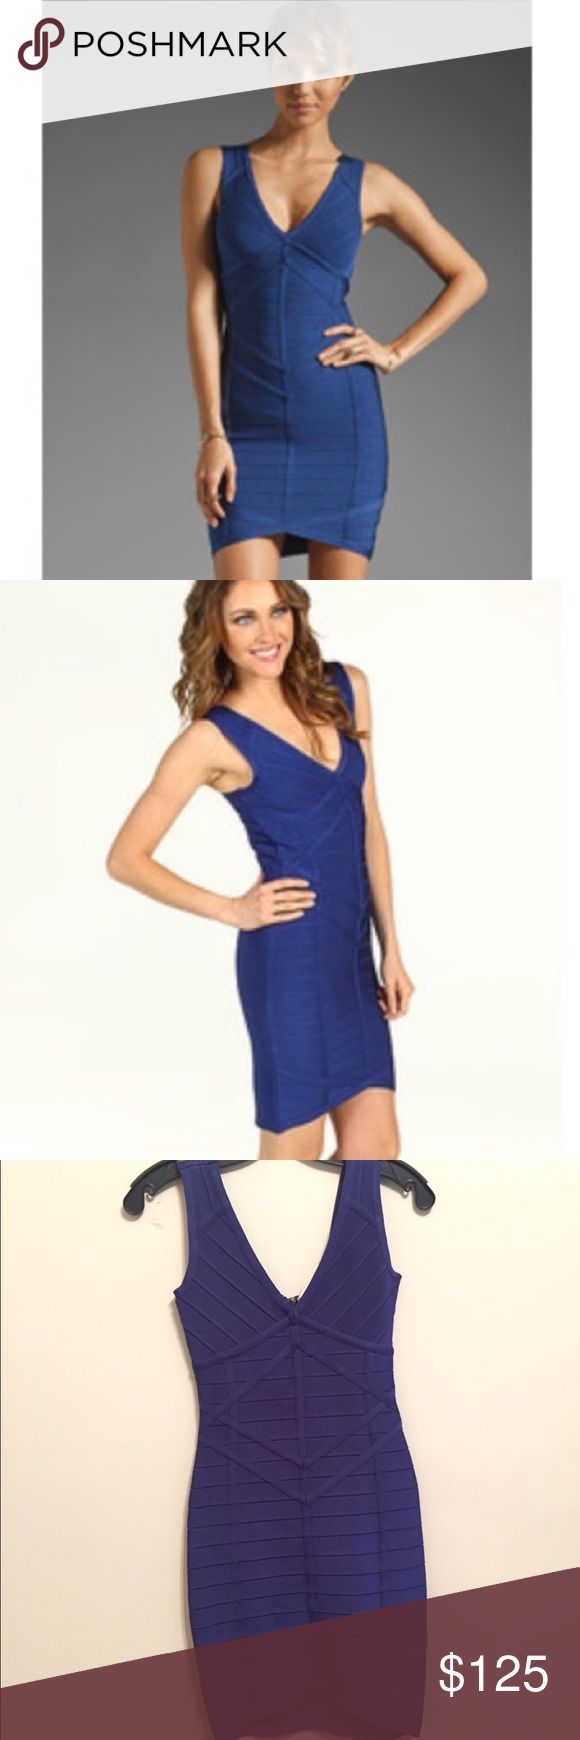 Stretta Rafaella V Neck Bandage Dress in Blue Worn once, stunning blue bandage dress fits amazing! 75% Rayon, 25% Spandex. Back zip closure, needs to be repaired the zipper closure became unhooked from the zipper but a tailor can fix very easily! Ask me any questions Stretta Dresses Mini